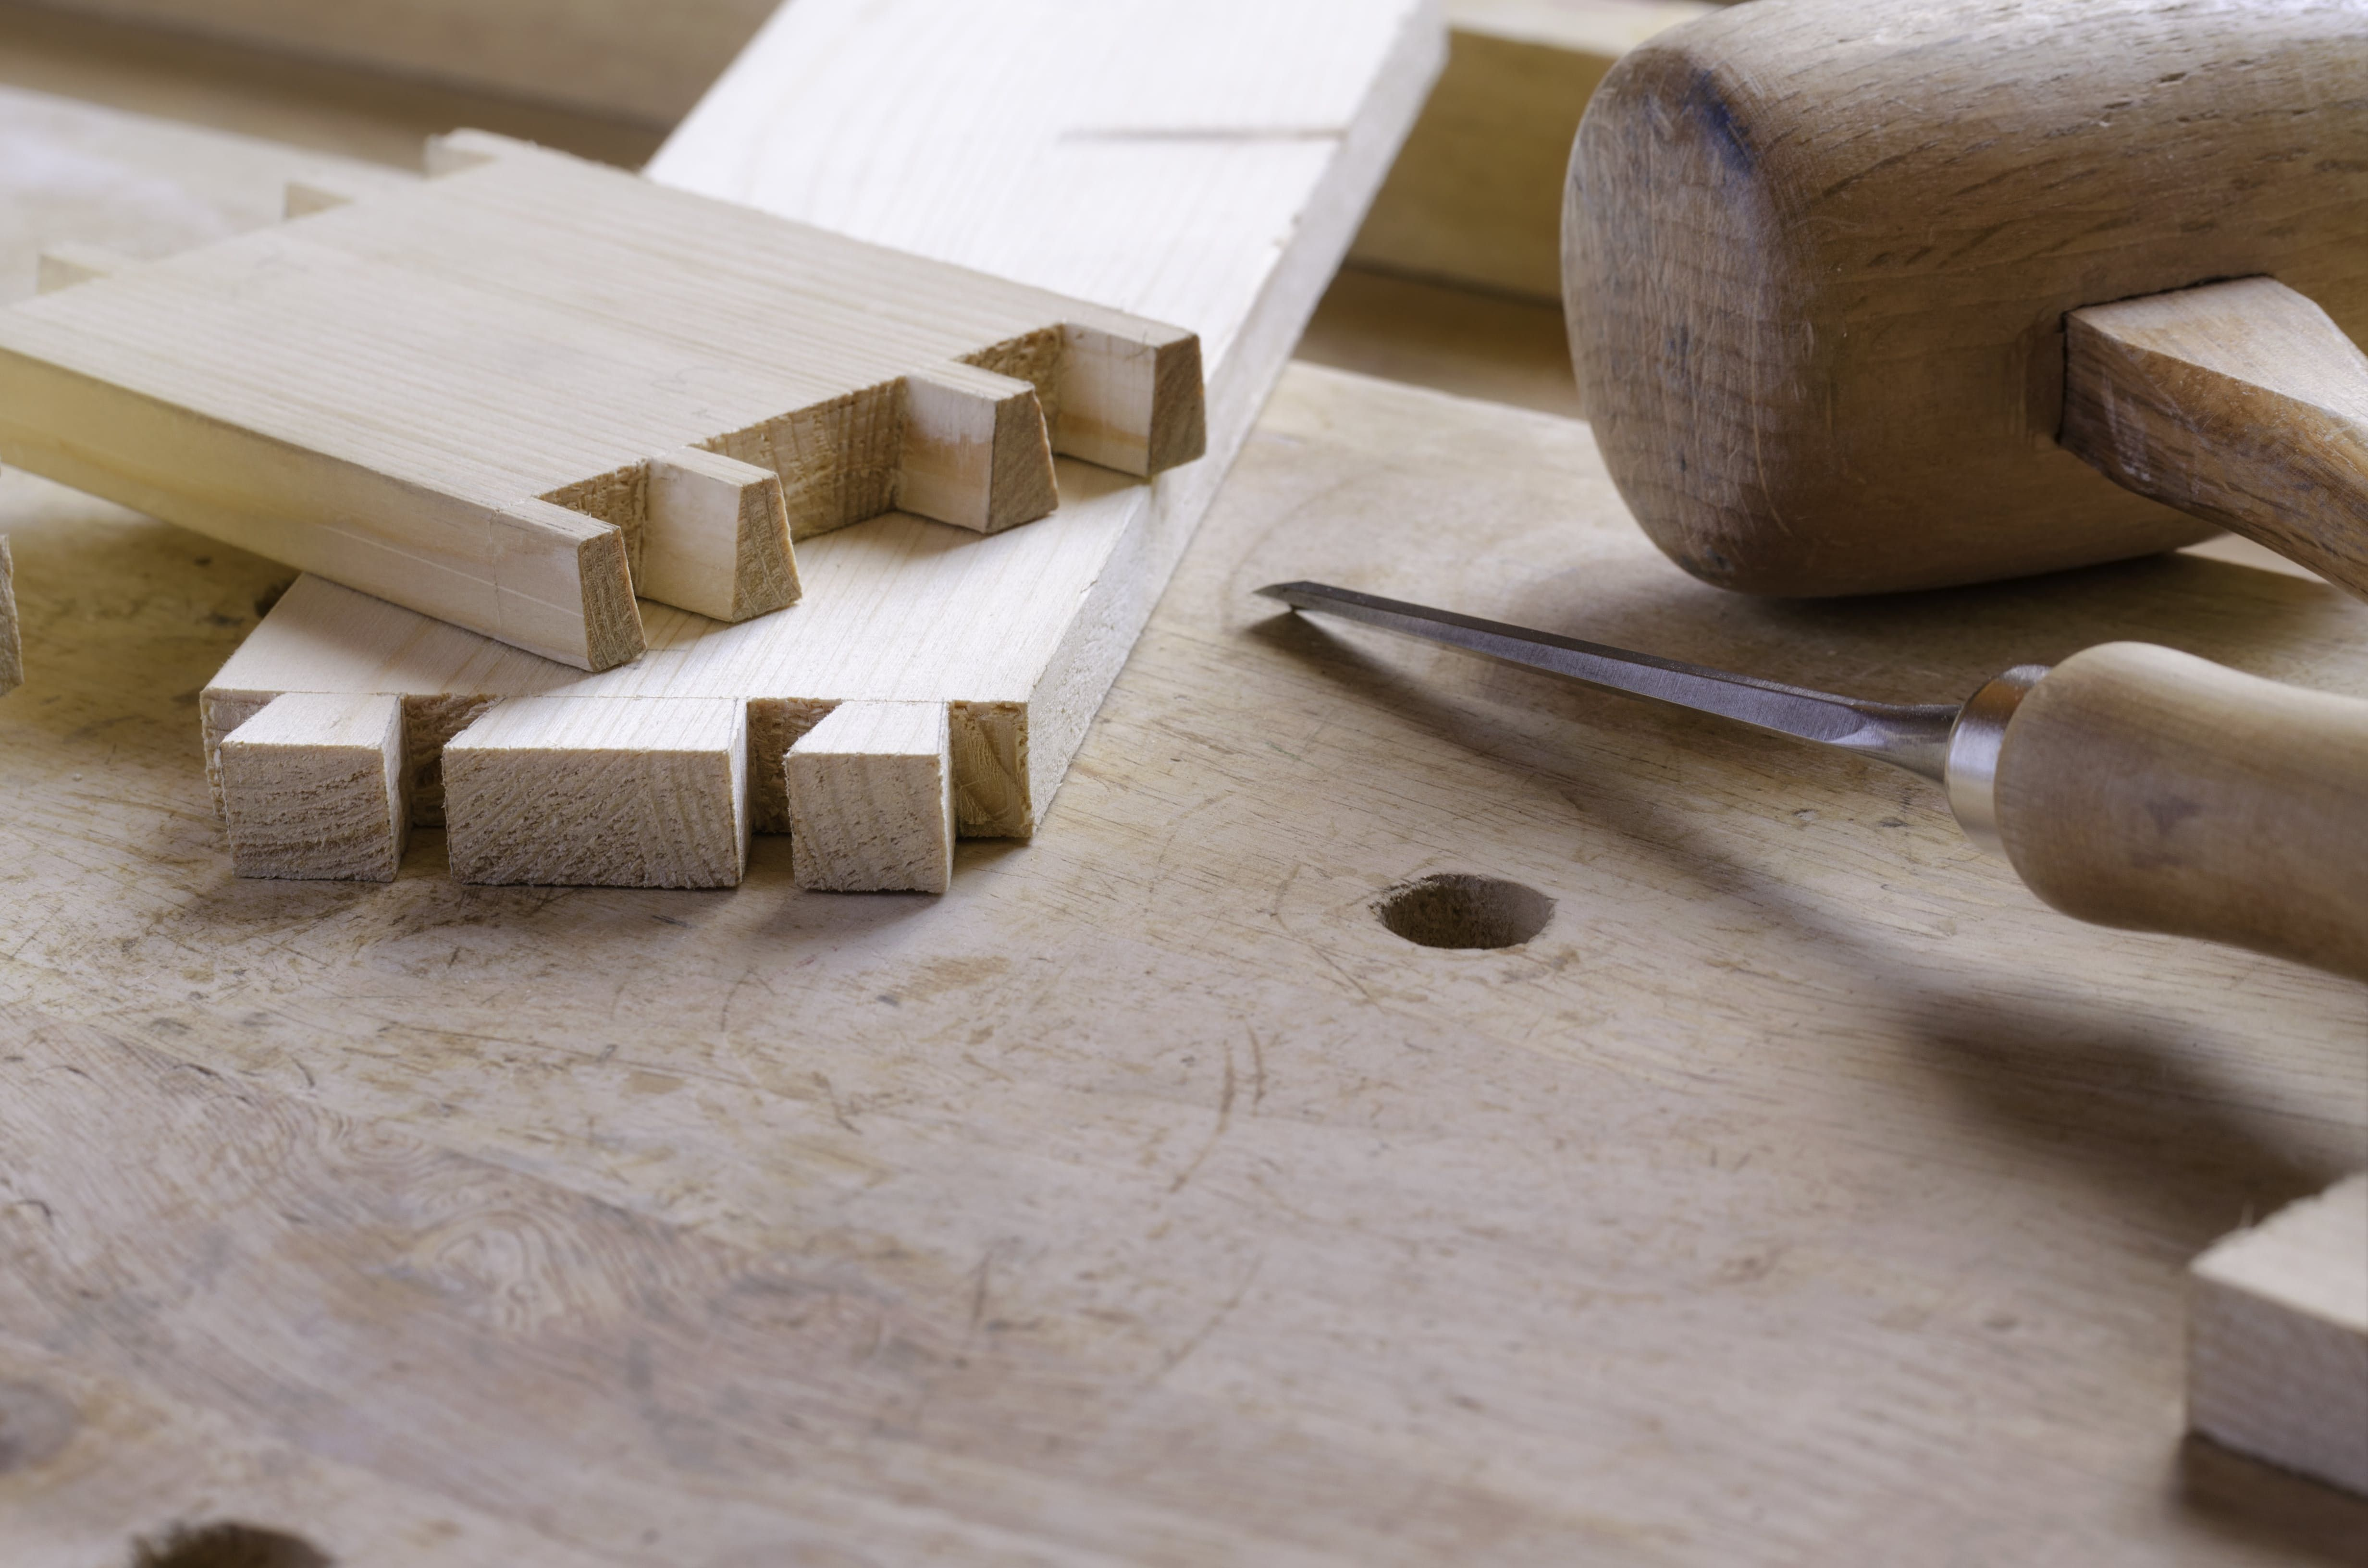 traditional japanese joinery, in gif form | it's all down to